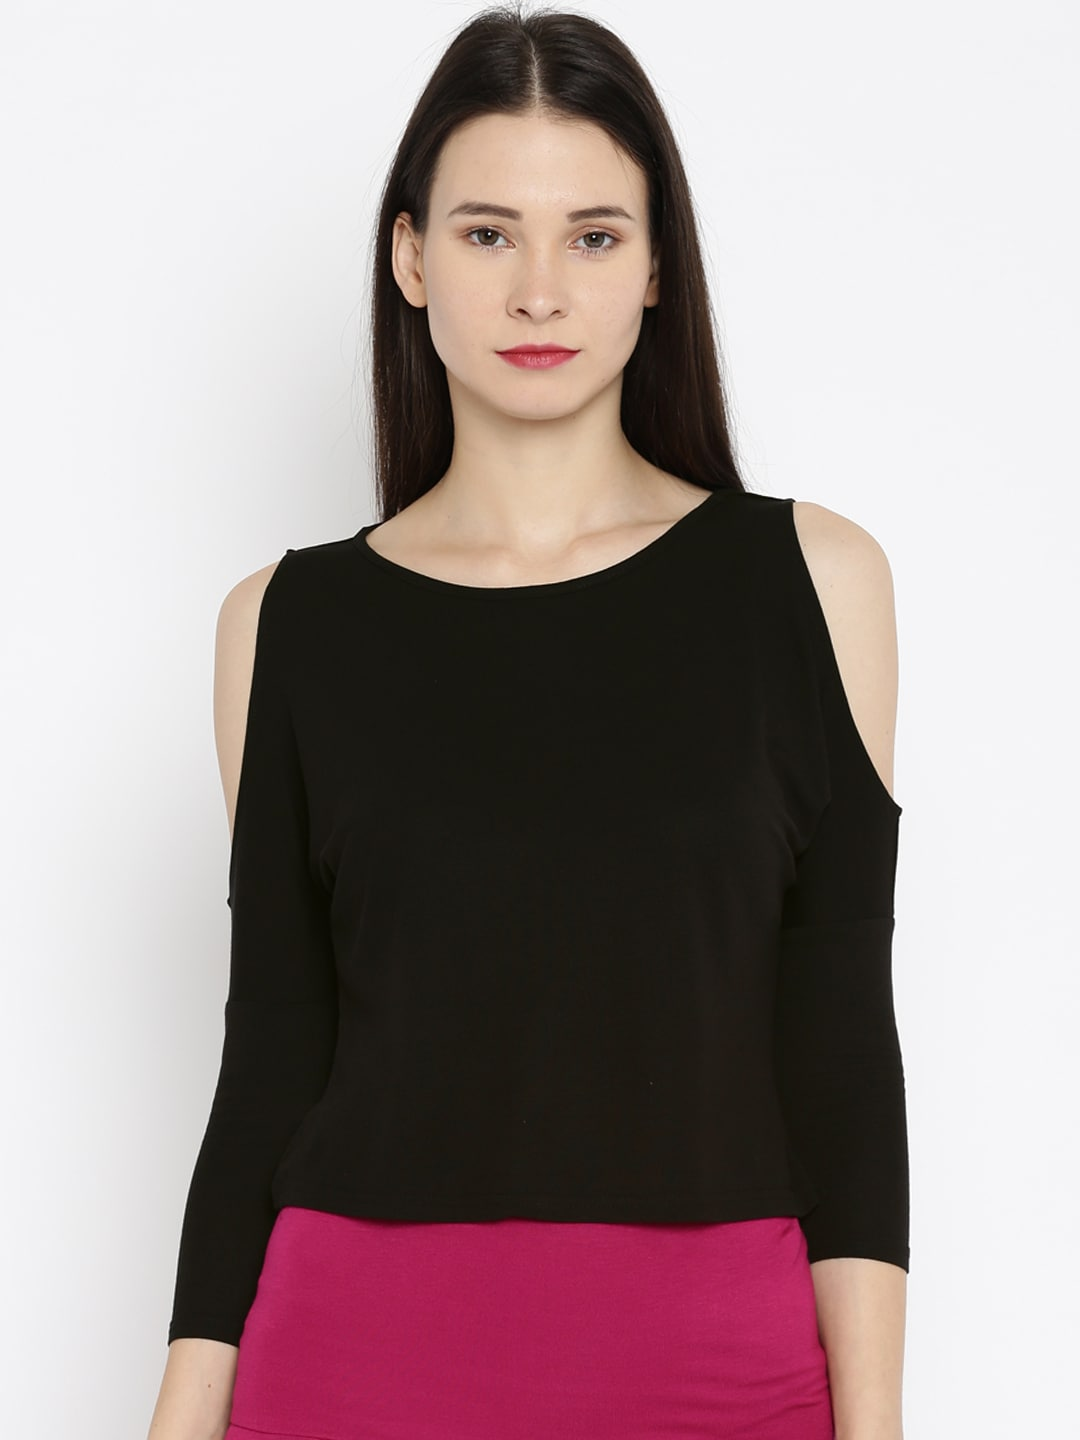 8185cd7f924f2 And aw16r48ktoe By Anita Dongre Women Black Cold Shoulder Top- Price in  India